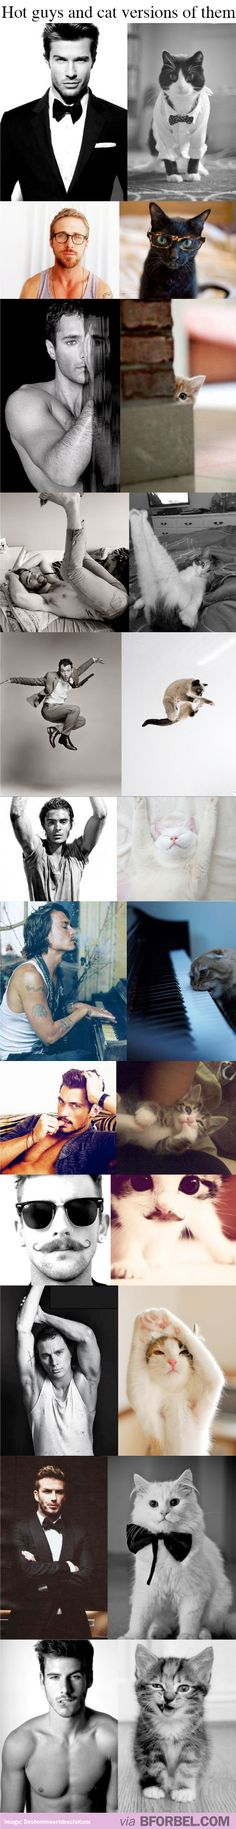 Hot guys and cat versions of them!